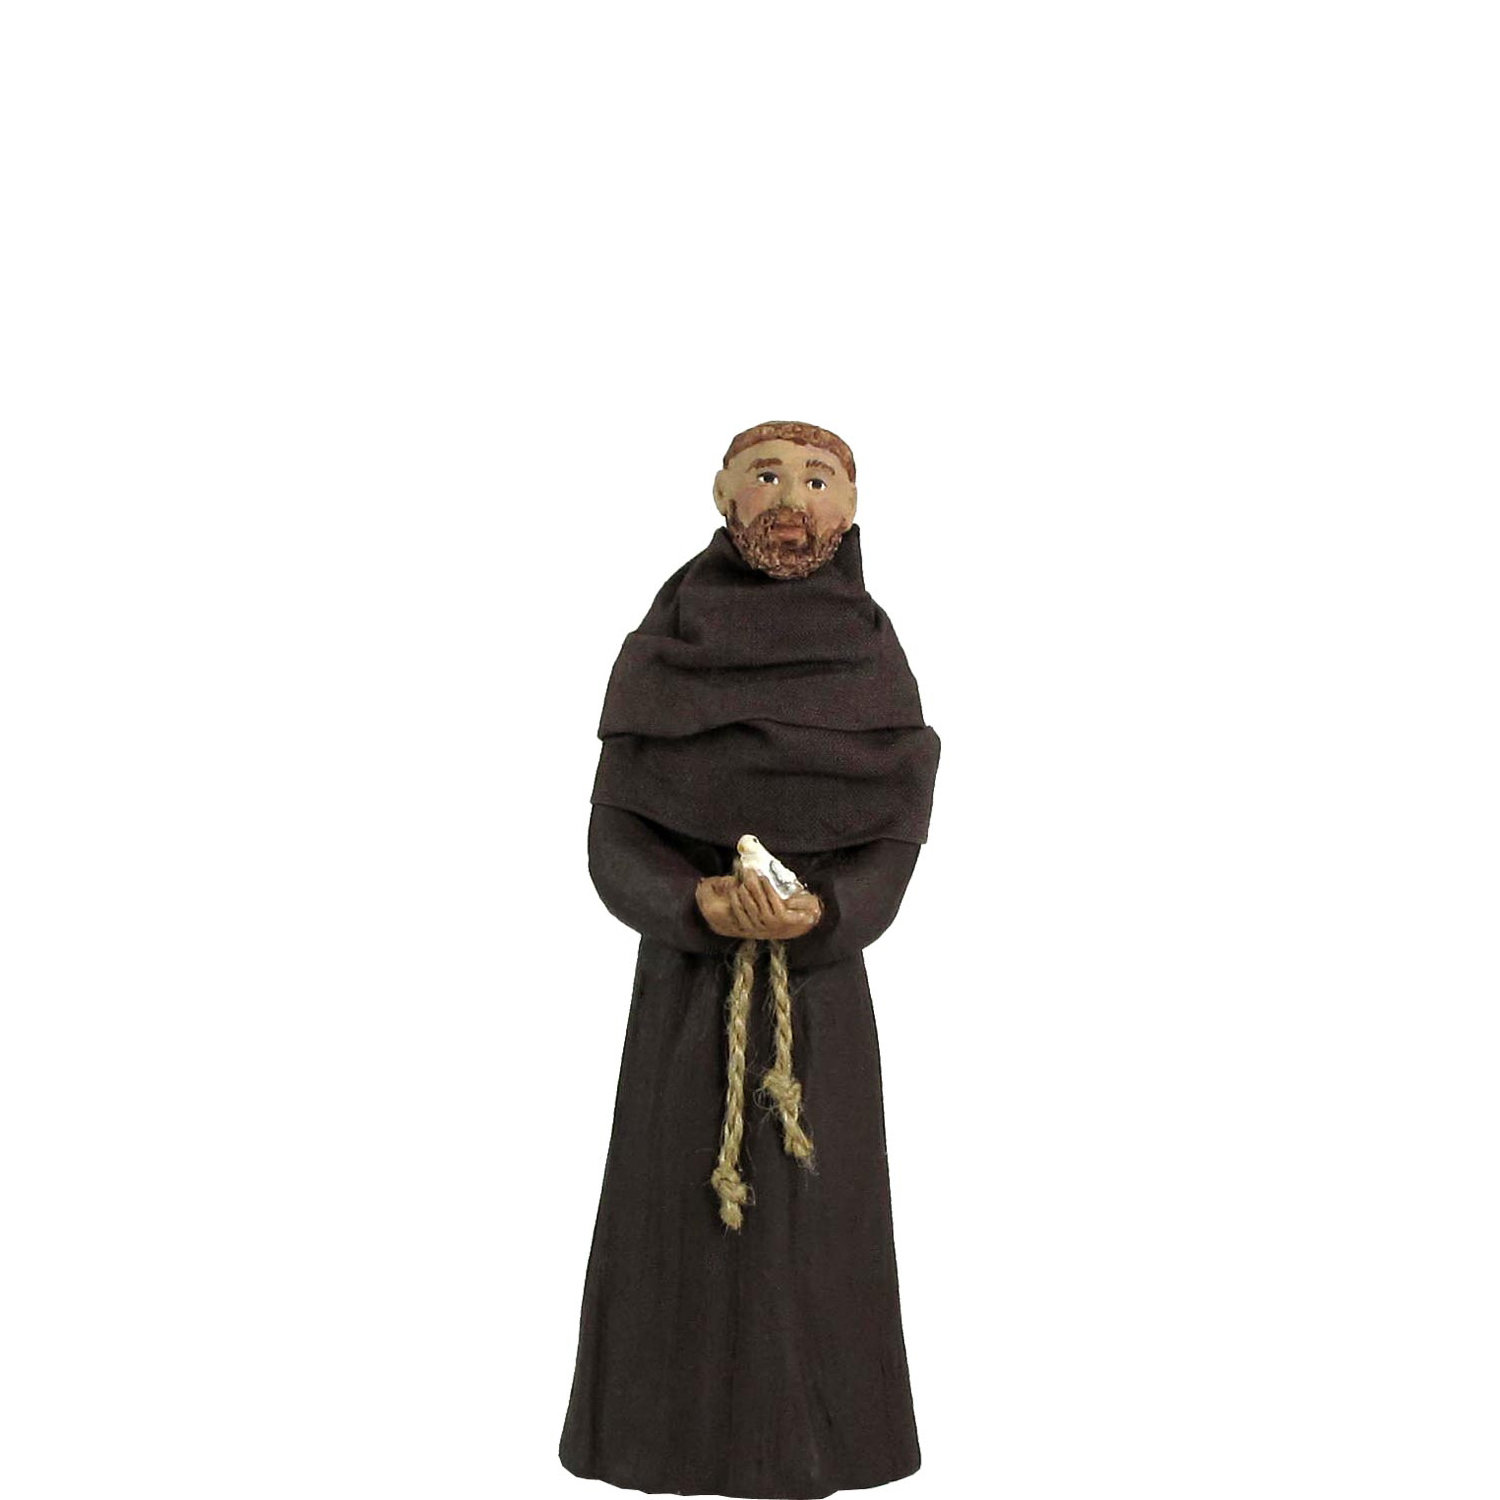 Nativity Figure - St Francis of Assisi NT-FIGU-STFRANCISXX14